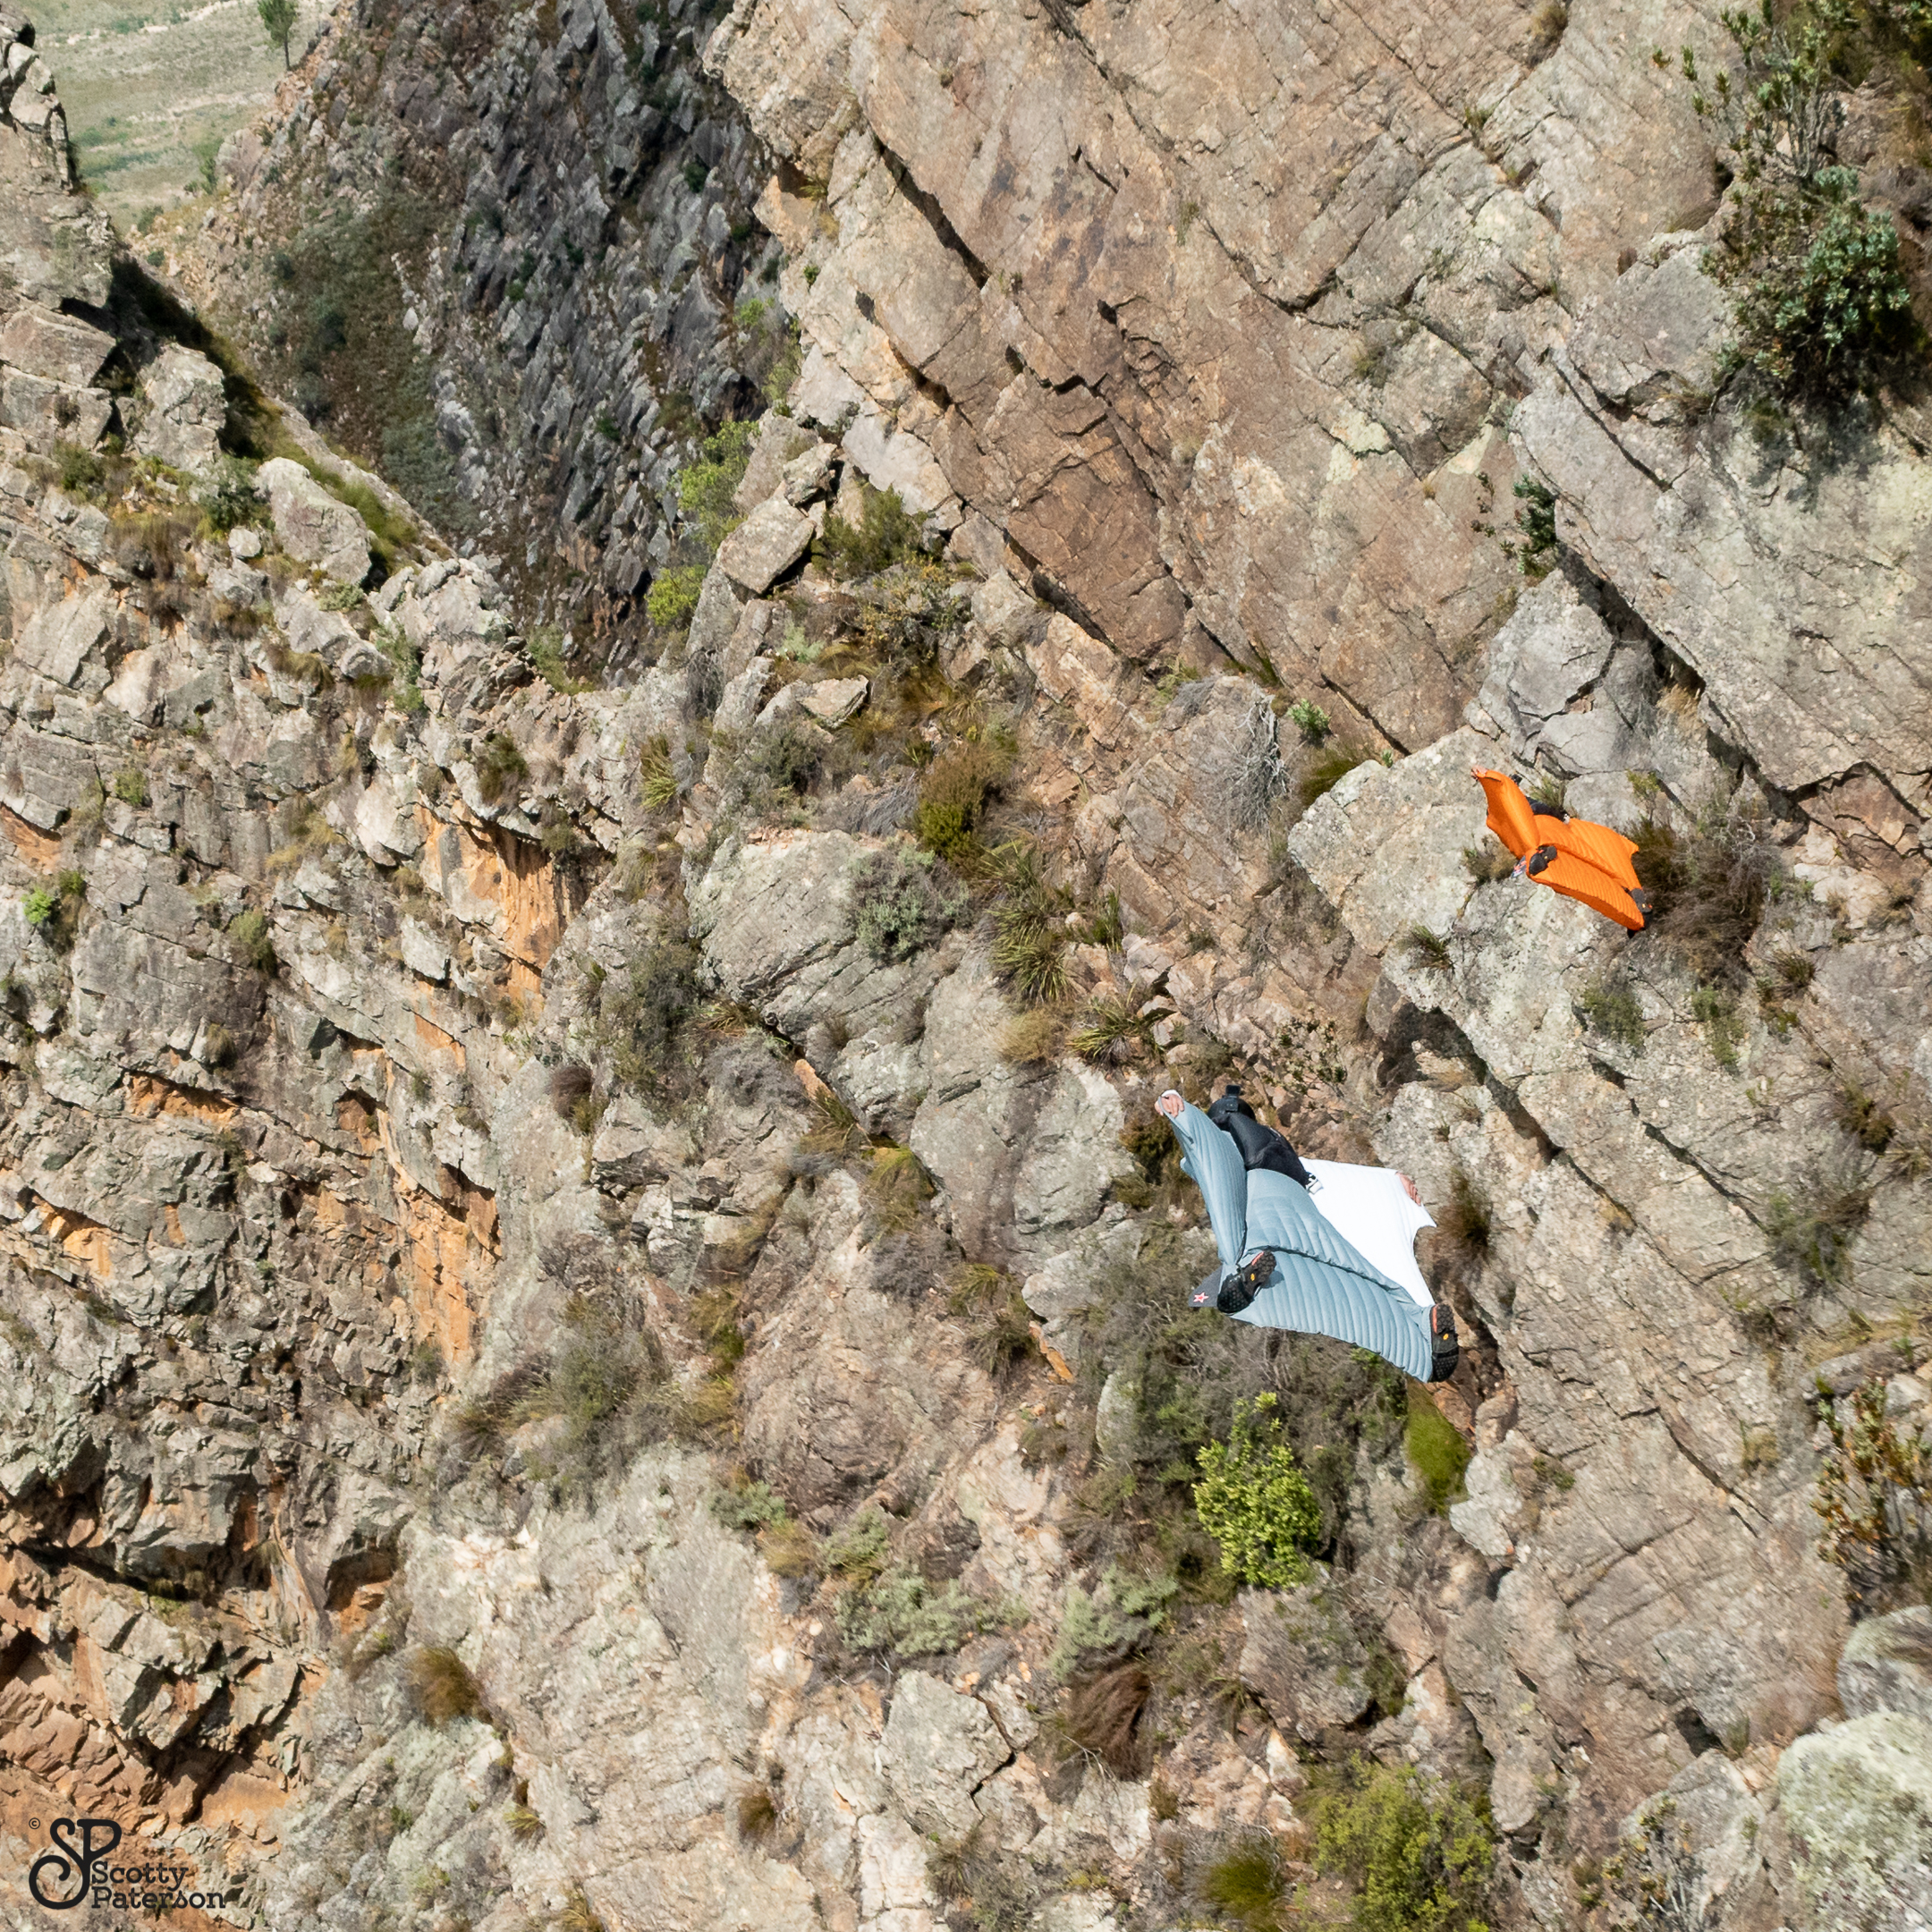 Wingsuitpilots Peter Salzmann und JJ Walis, Picture by Scott Paterson